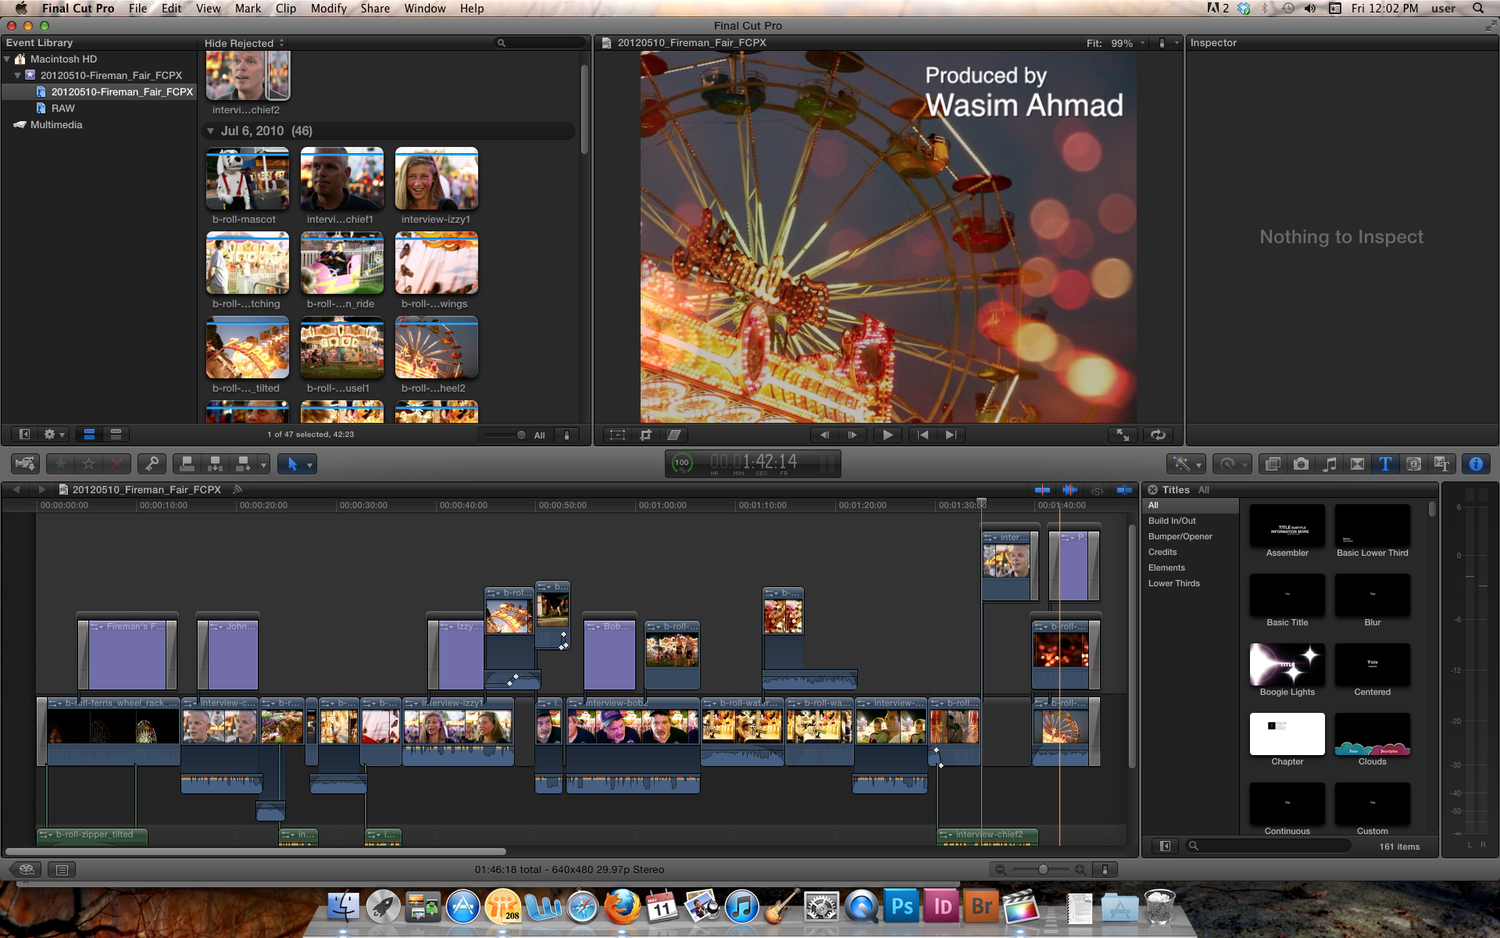 This first timeline I ever created in Final Cut Pro X was so bad, I had to take a picture of how disorganized it all looked. It was mostly my fault, since I had no idea what I was doing.